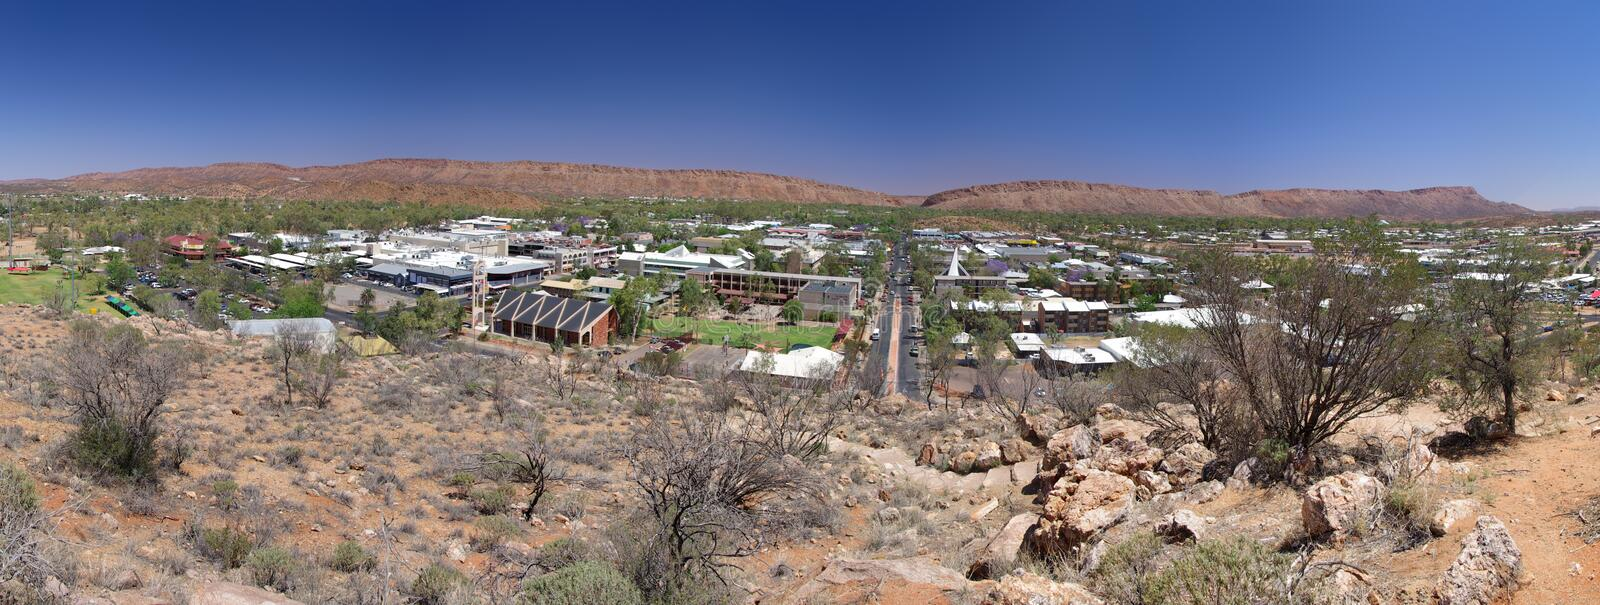 Alice Springs stock foto